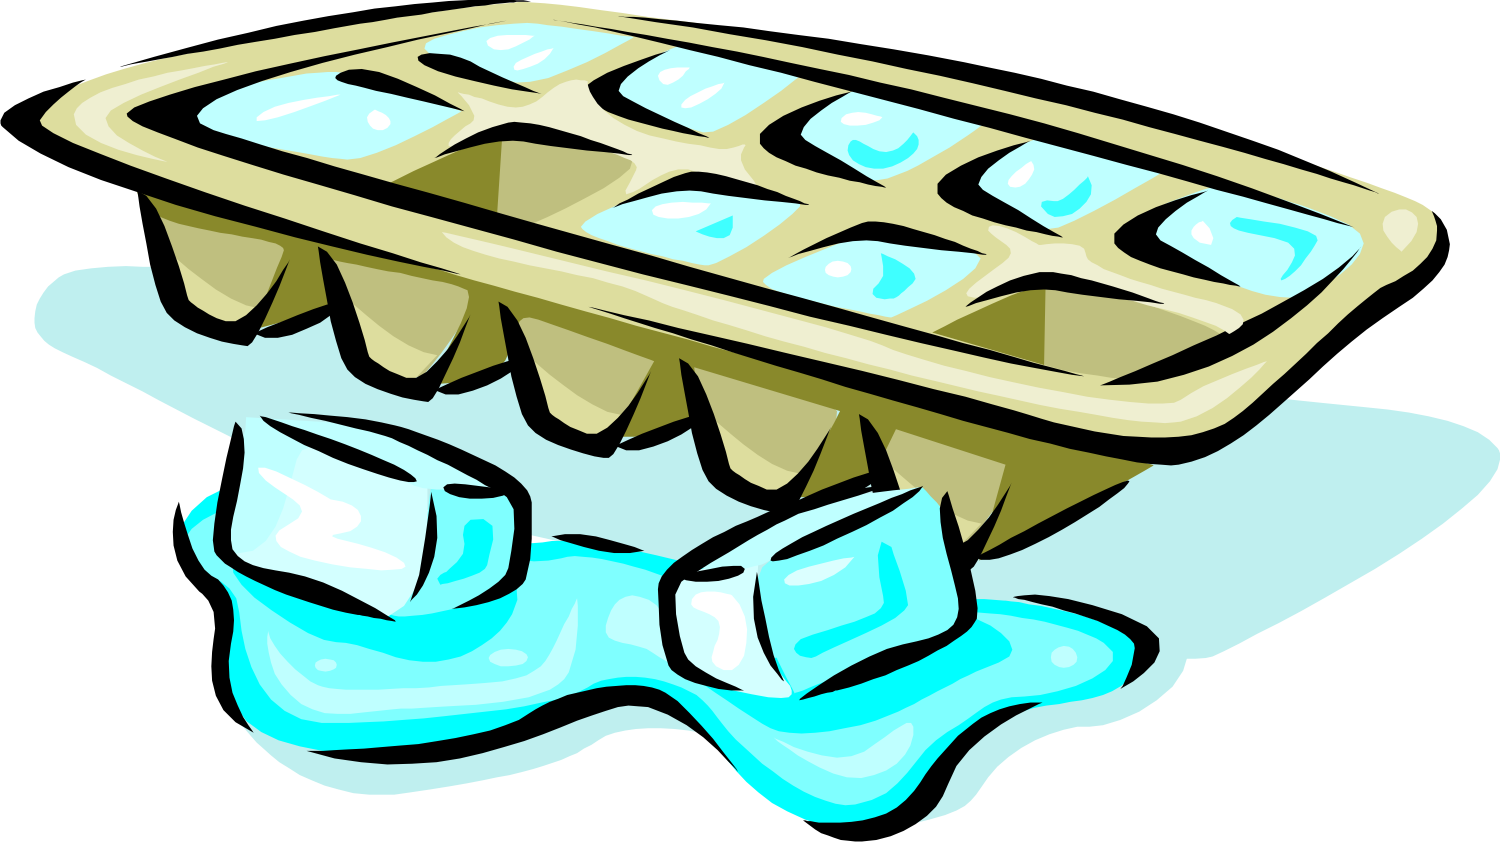 clipart of ice - photo #28